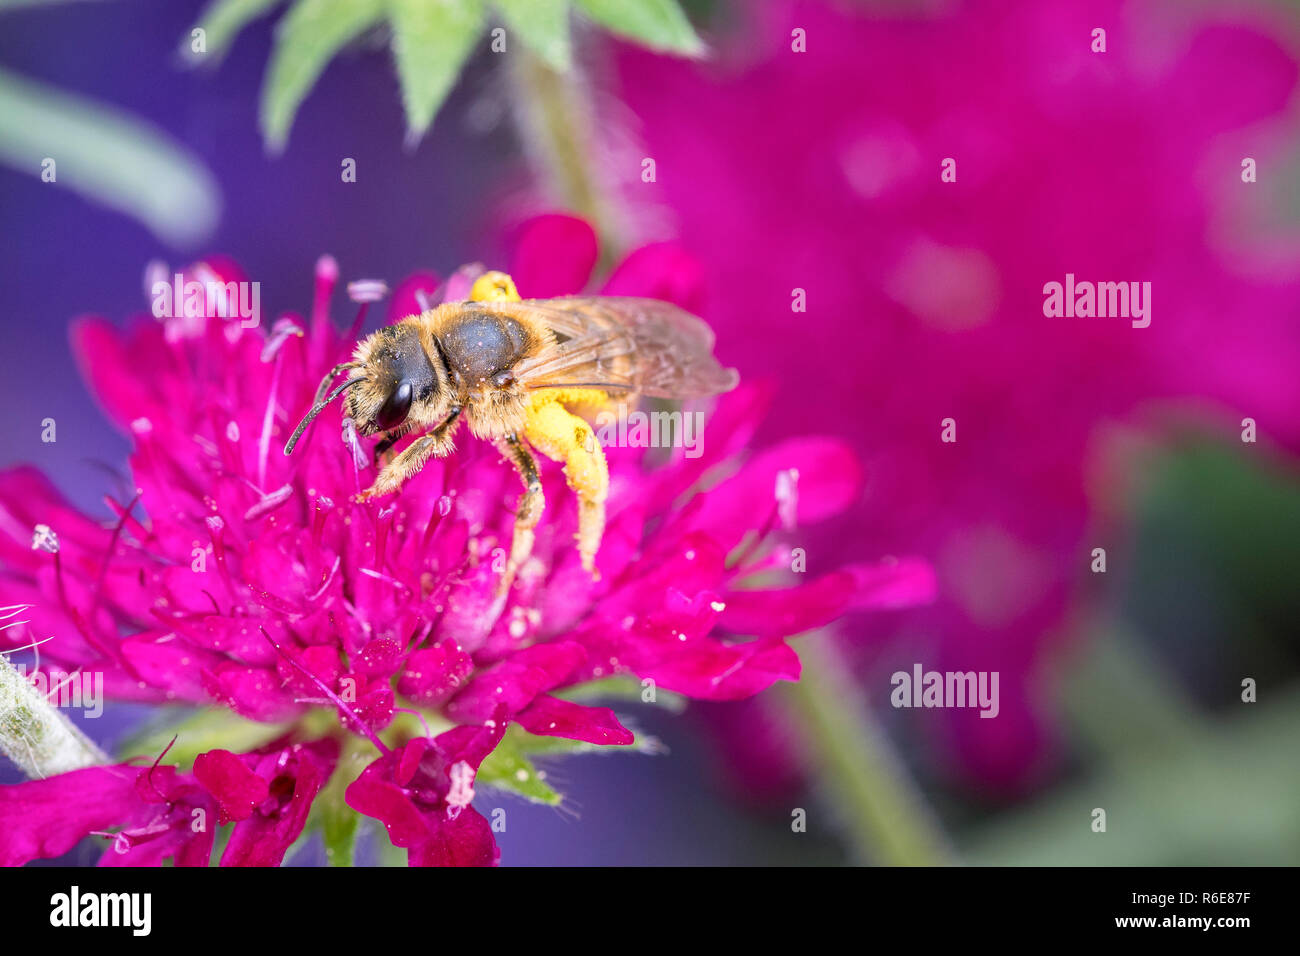 Bee Pollinates A Flower - Stock Image